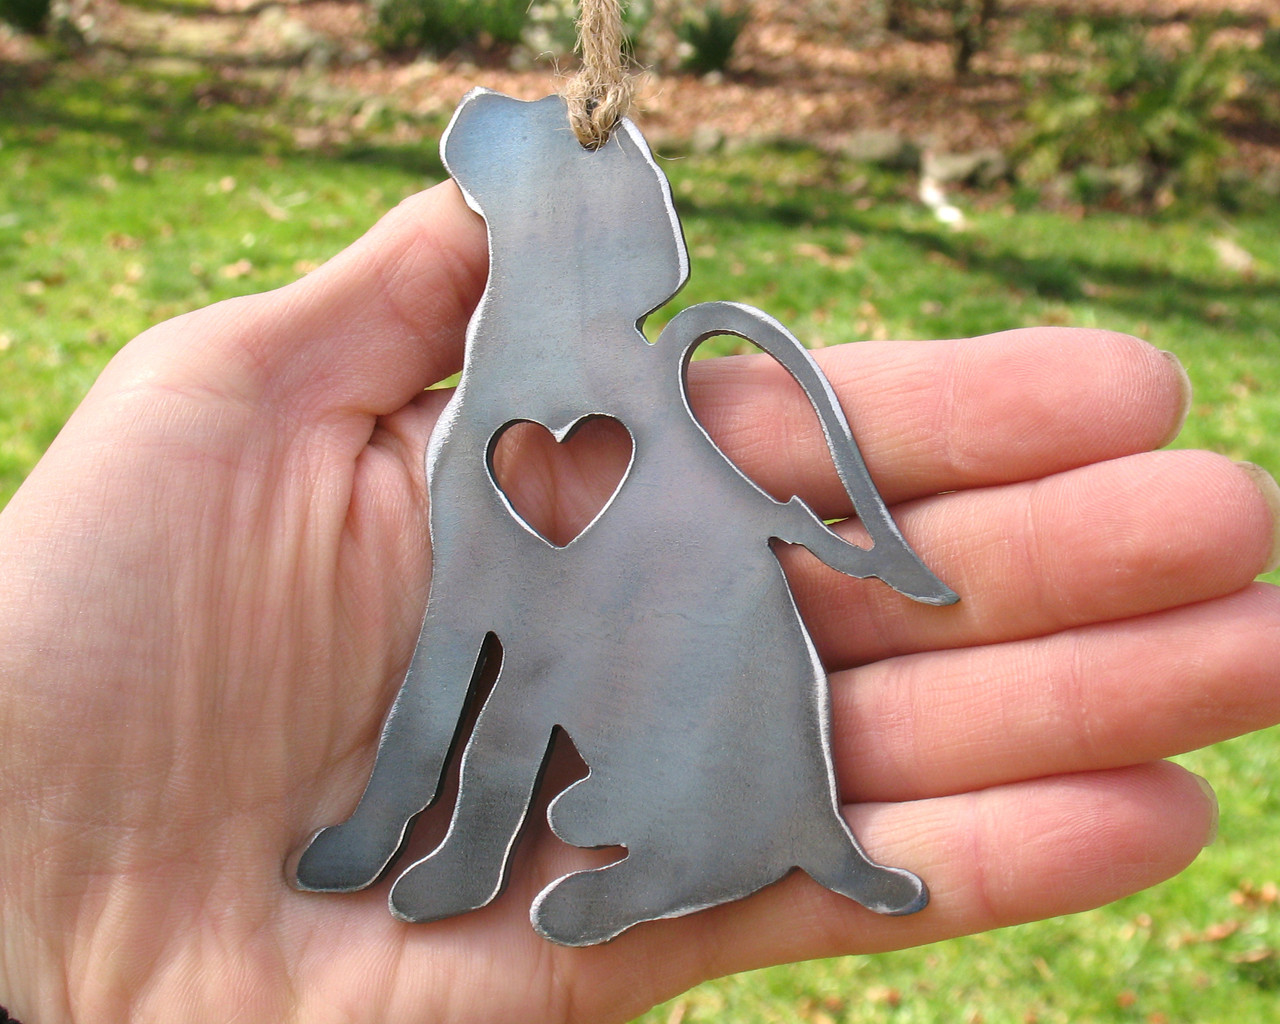 German Pointer Dog Ornament Pet Memorial W/ Angel Wings - Pet Loss Dog Sympathy Remembrance Gift - Metal Dog Christmas Ornament